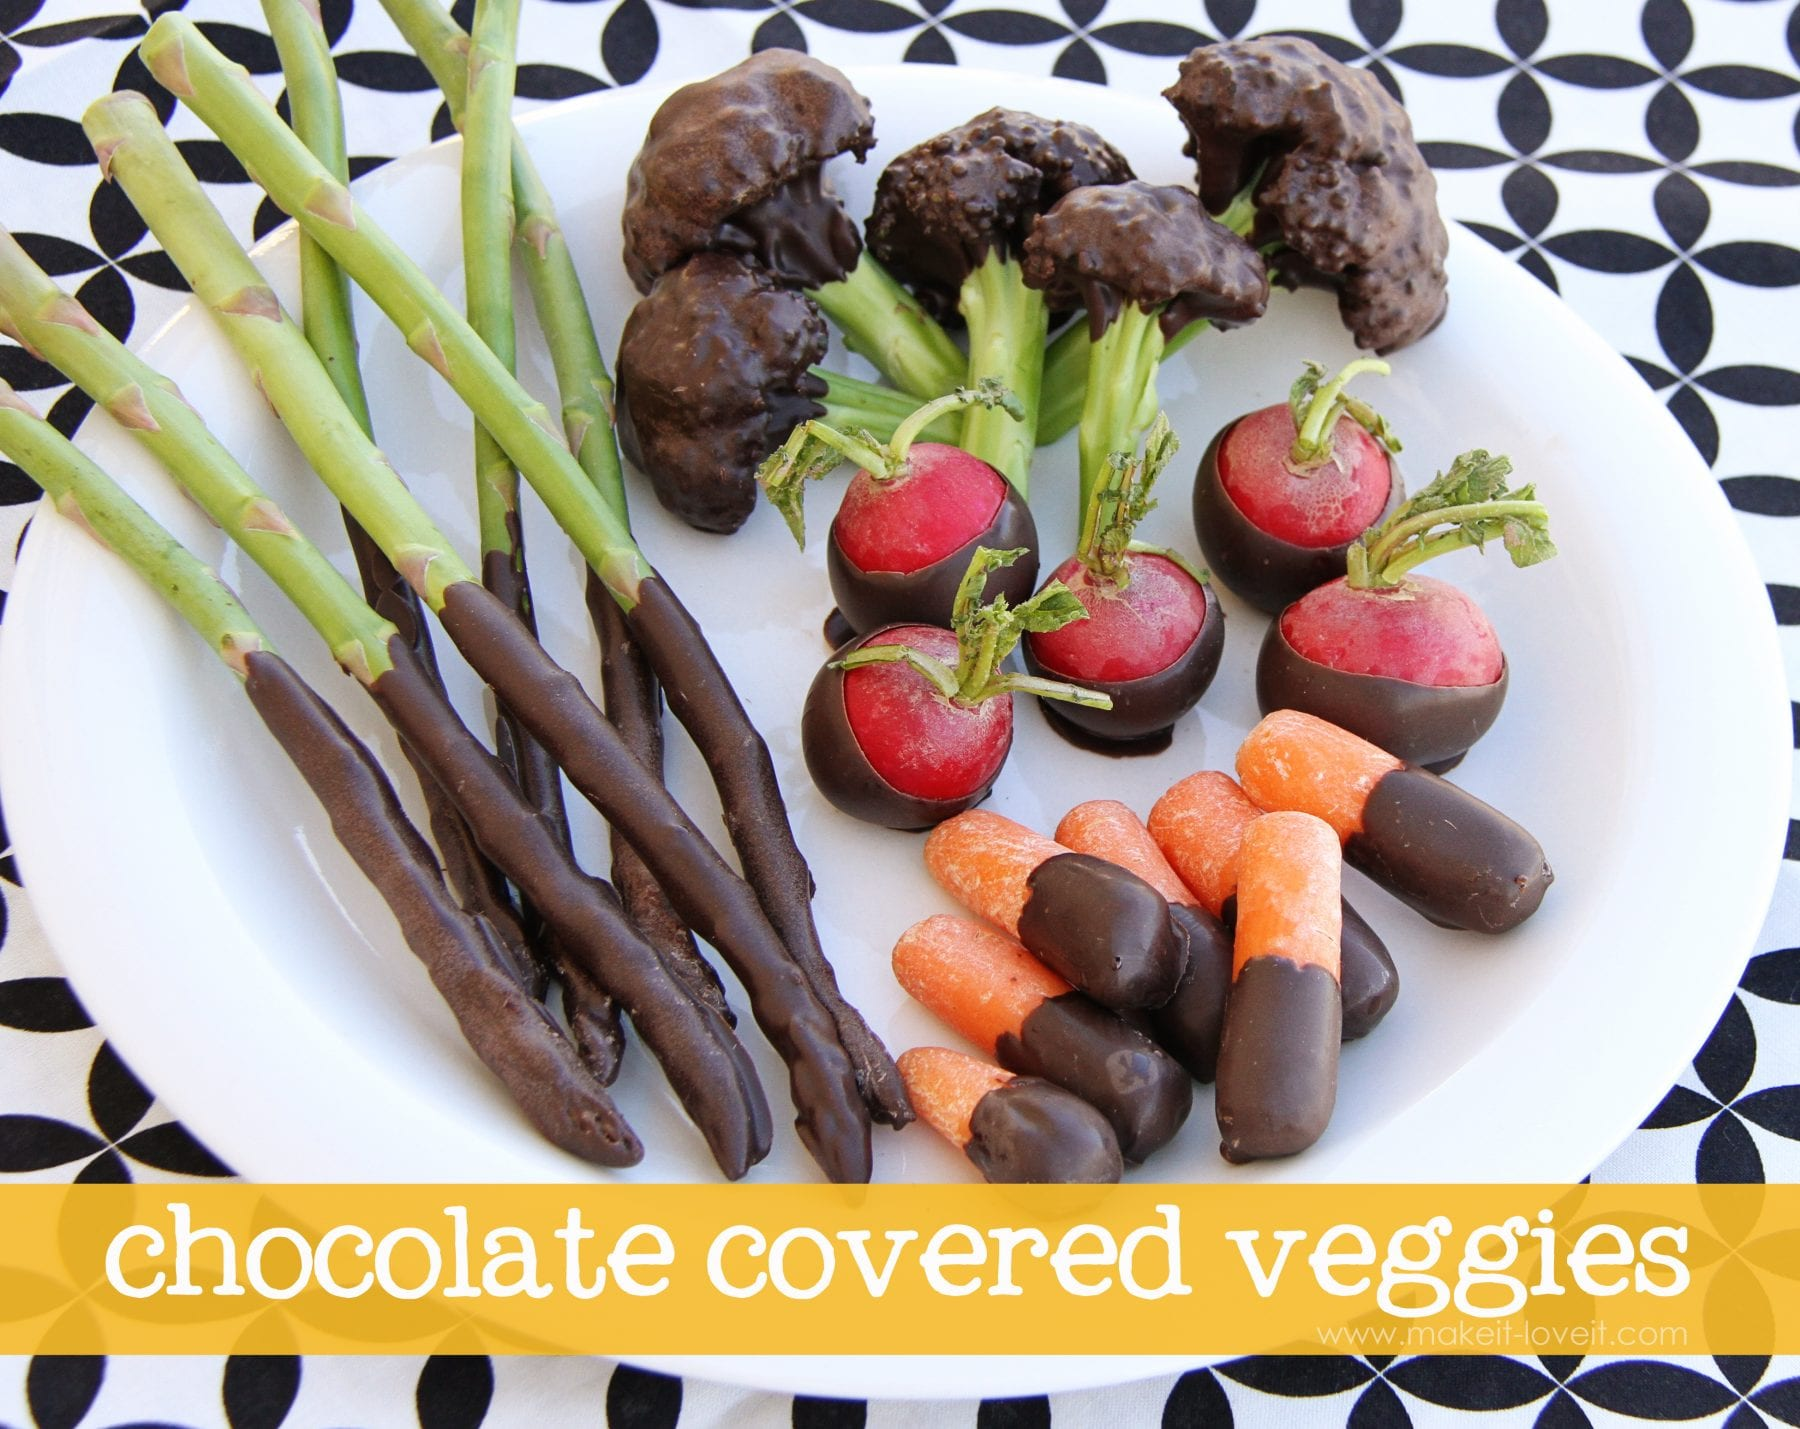 Chocolate Covered Veggies……(EDITED: April Fool's!!)